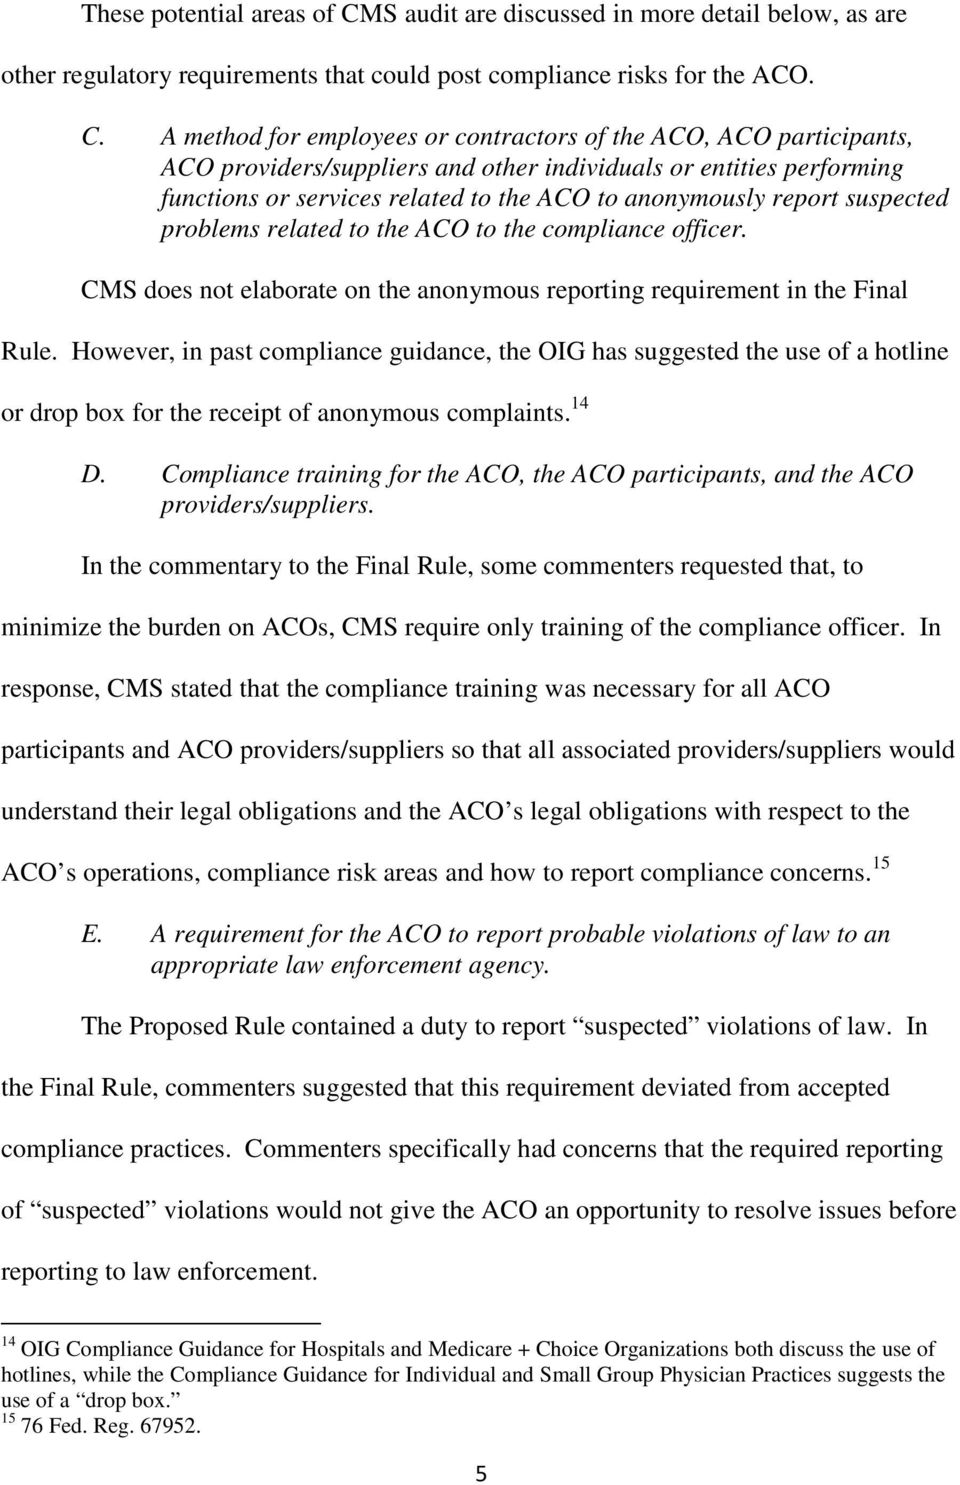 A method for employees or contractors of the ACO, ACO participants, ACO providers/suppliers and other individuals or entities performing functions or services related to the ACO to anonymously report